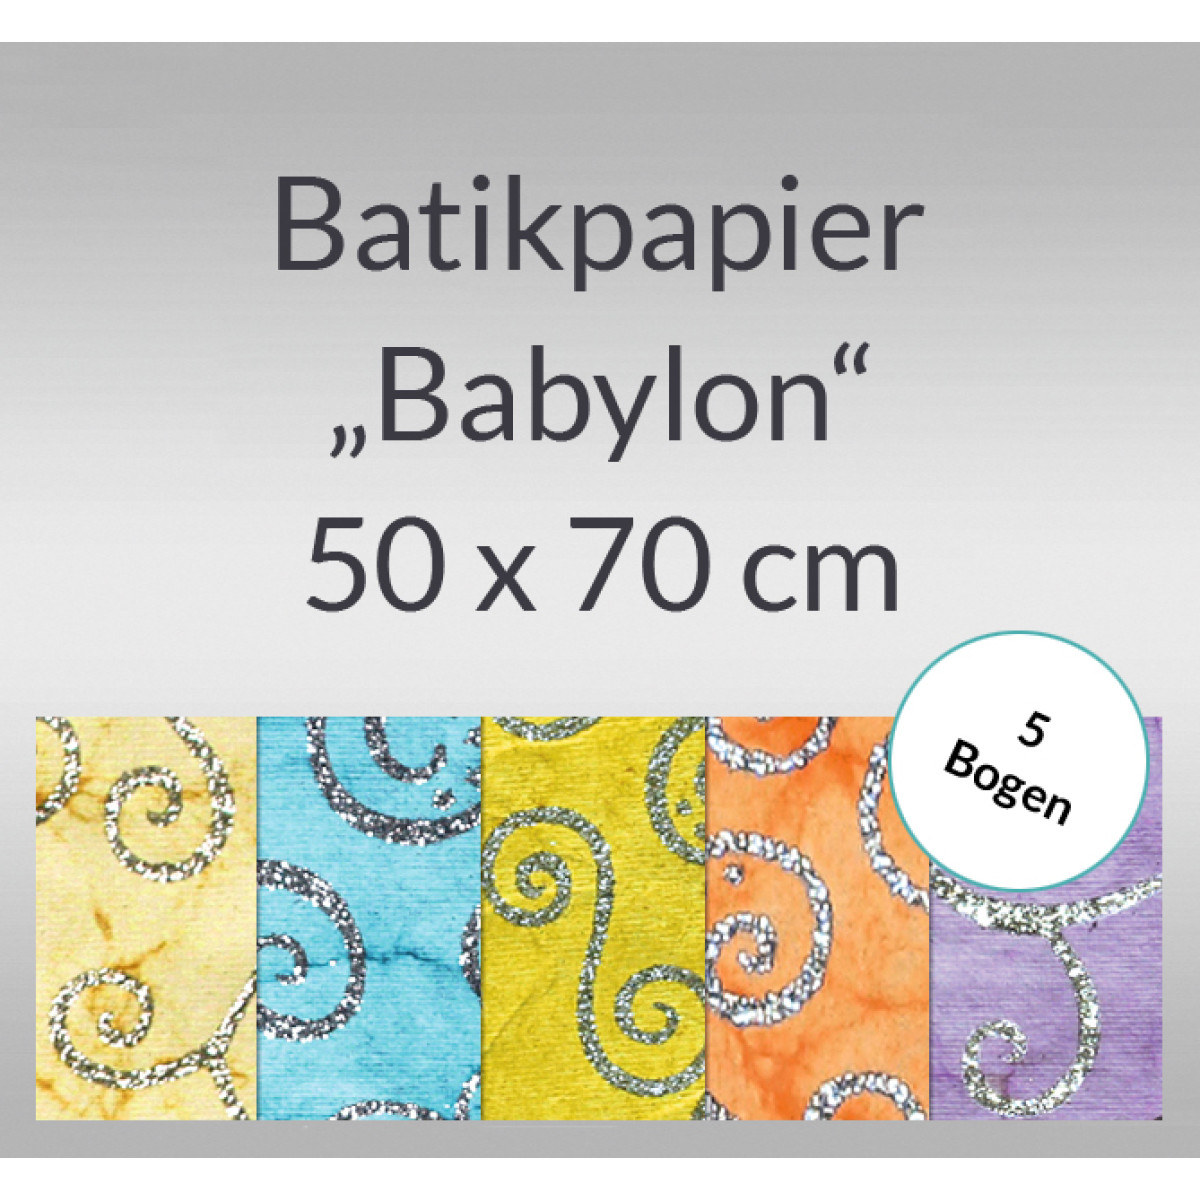 batikpapier babylon 50 x 70 cm 5 bogen buntpapierwelt. Black Bedroom Furniture Sets. Home Design Ideas